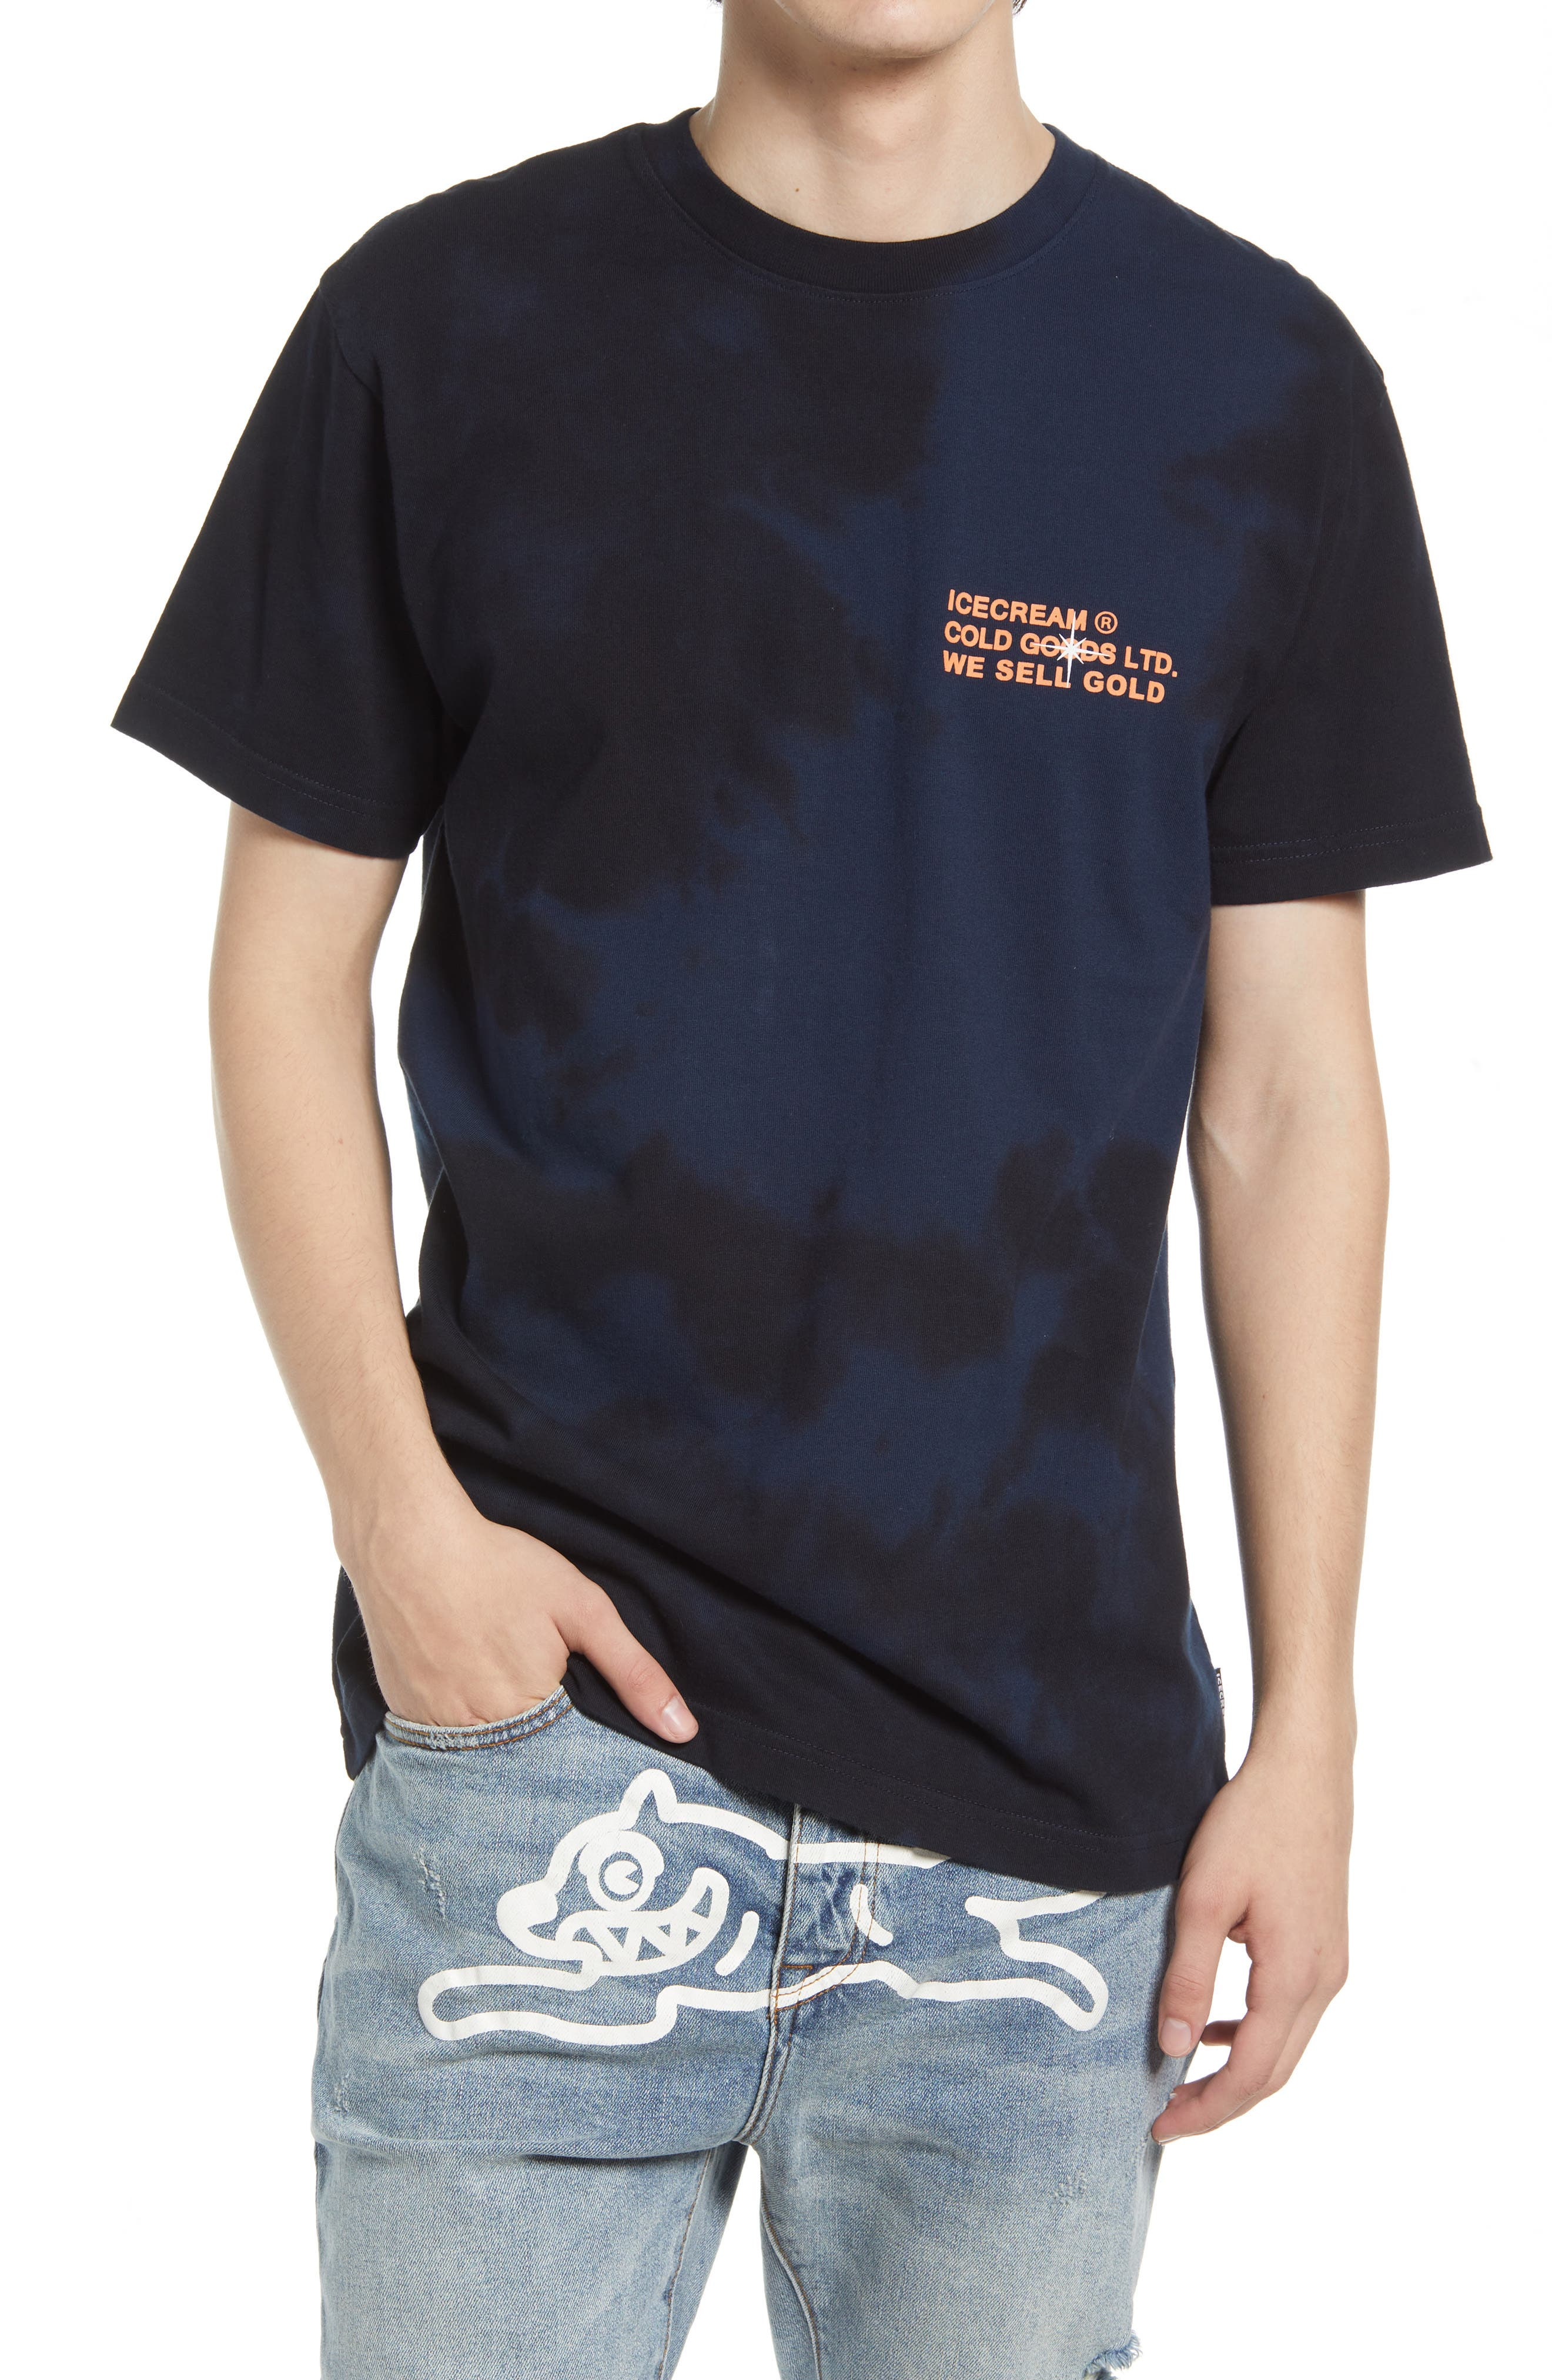 Cold Goods Cotton Graphic Tee